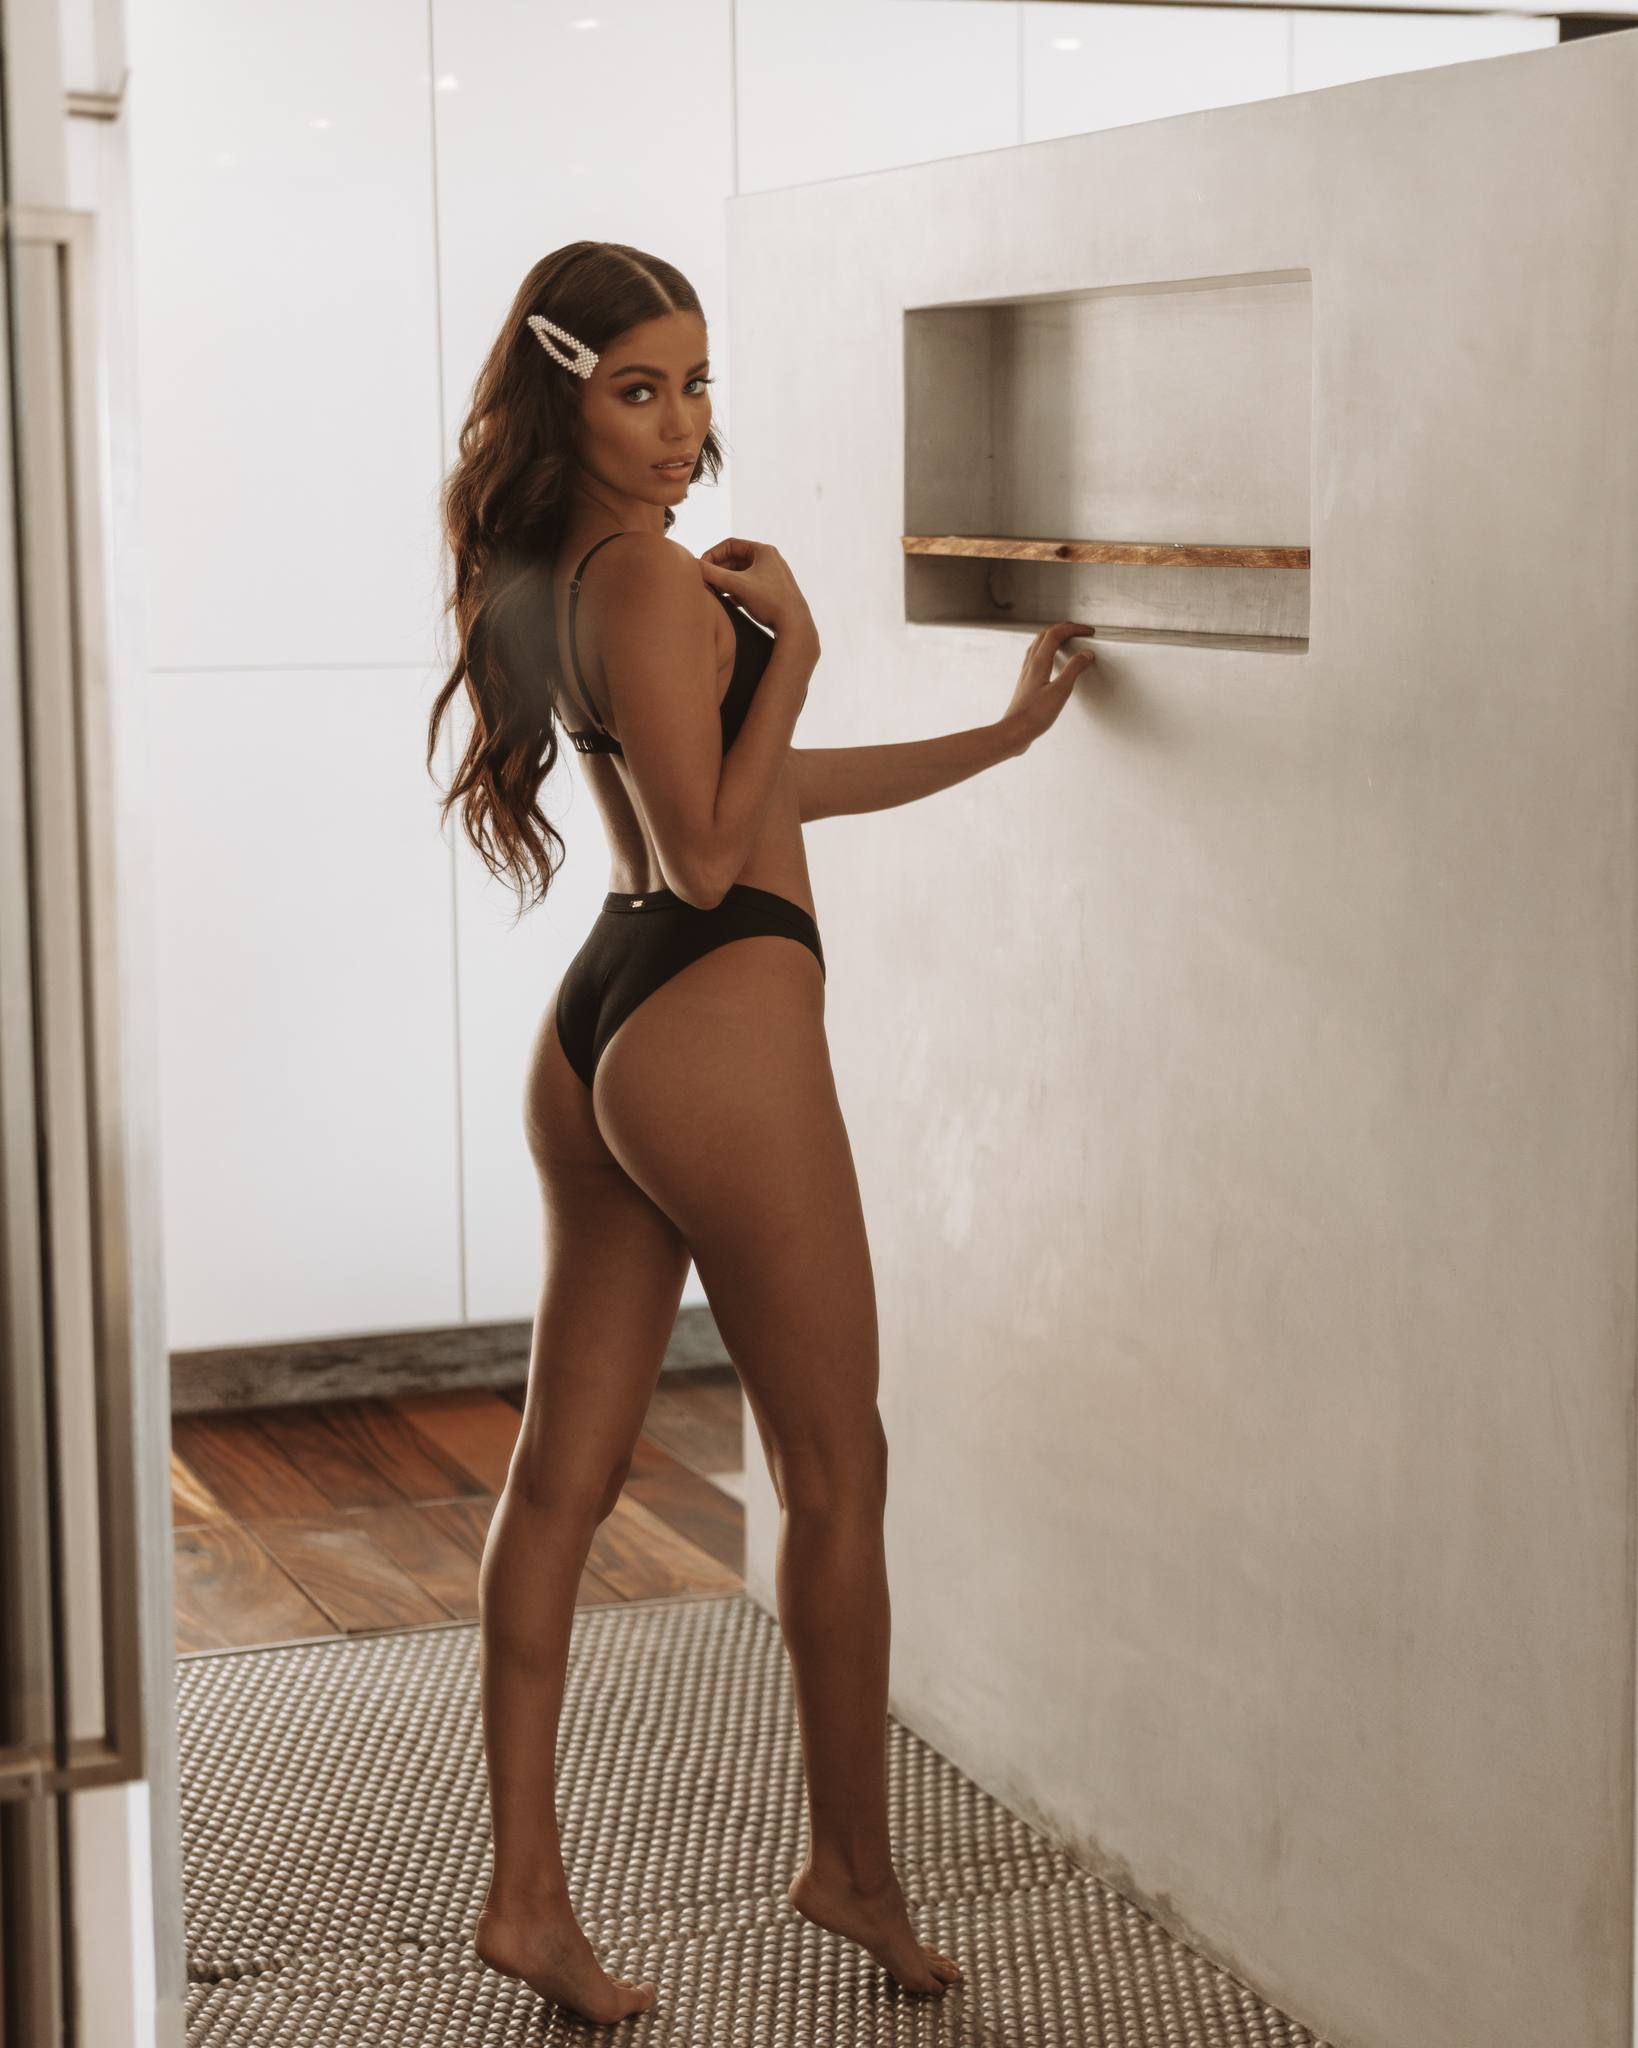 Audreyana Michelle – Hot Ass In Sexy Photoshoot For X Gooseberry Intimates Swimwear 2020 0017